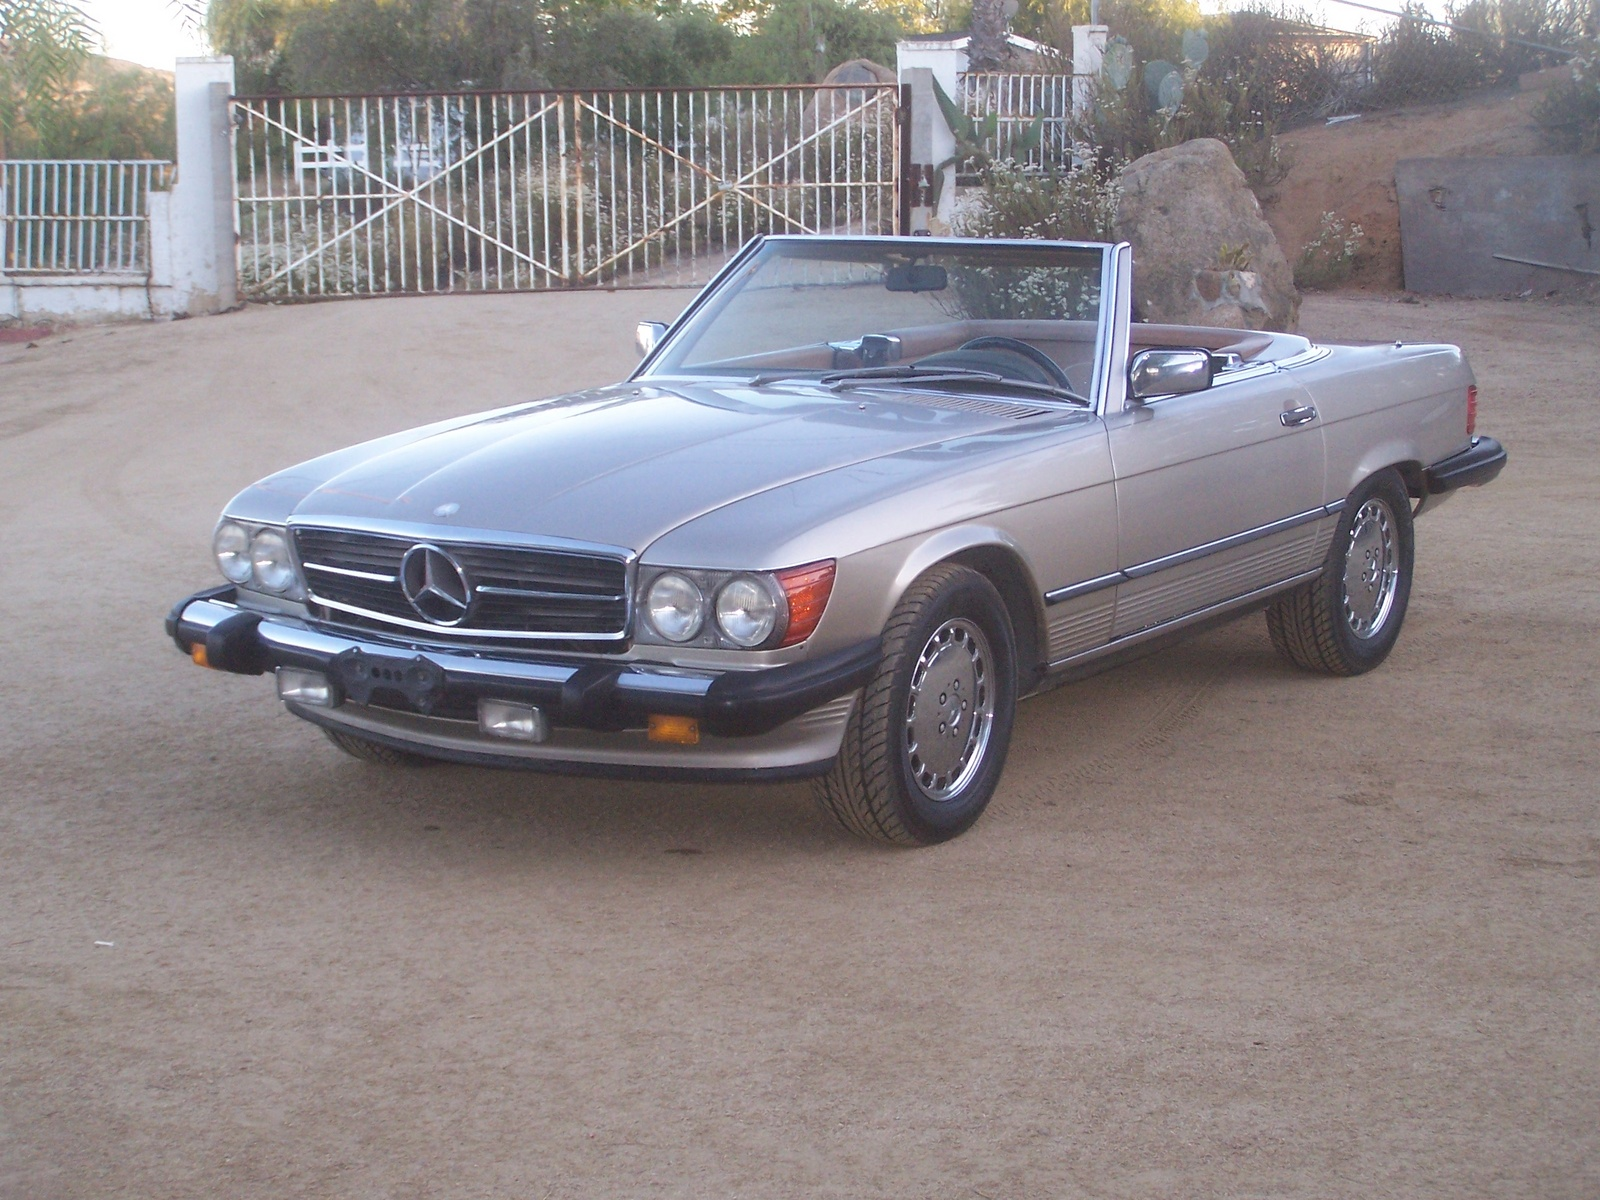 1987 mercedes benz 560 class pictures cargurus for 1987 mercedes benz 560sl value